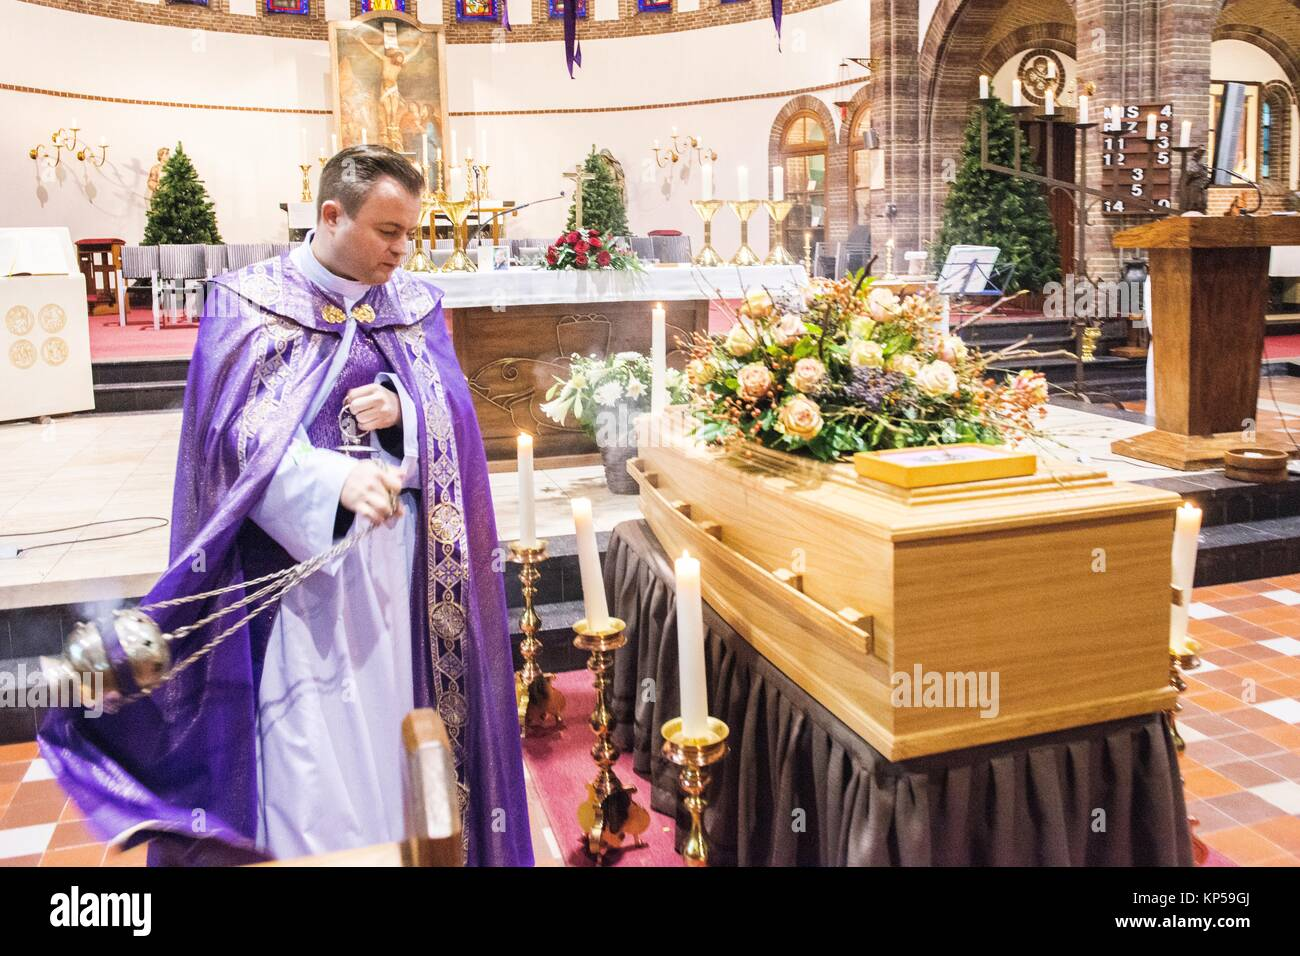 Catholic funeral stock photos catholic funeral stock images alamy catholic funeral ceremony prior to the burrial of a deceased person izmirmasajfo